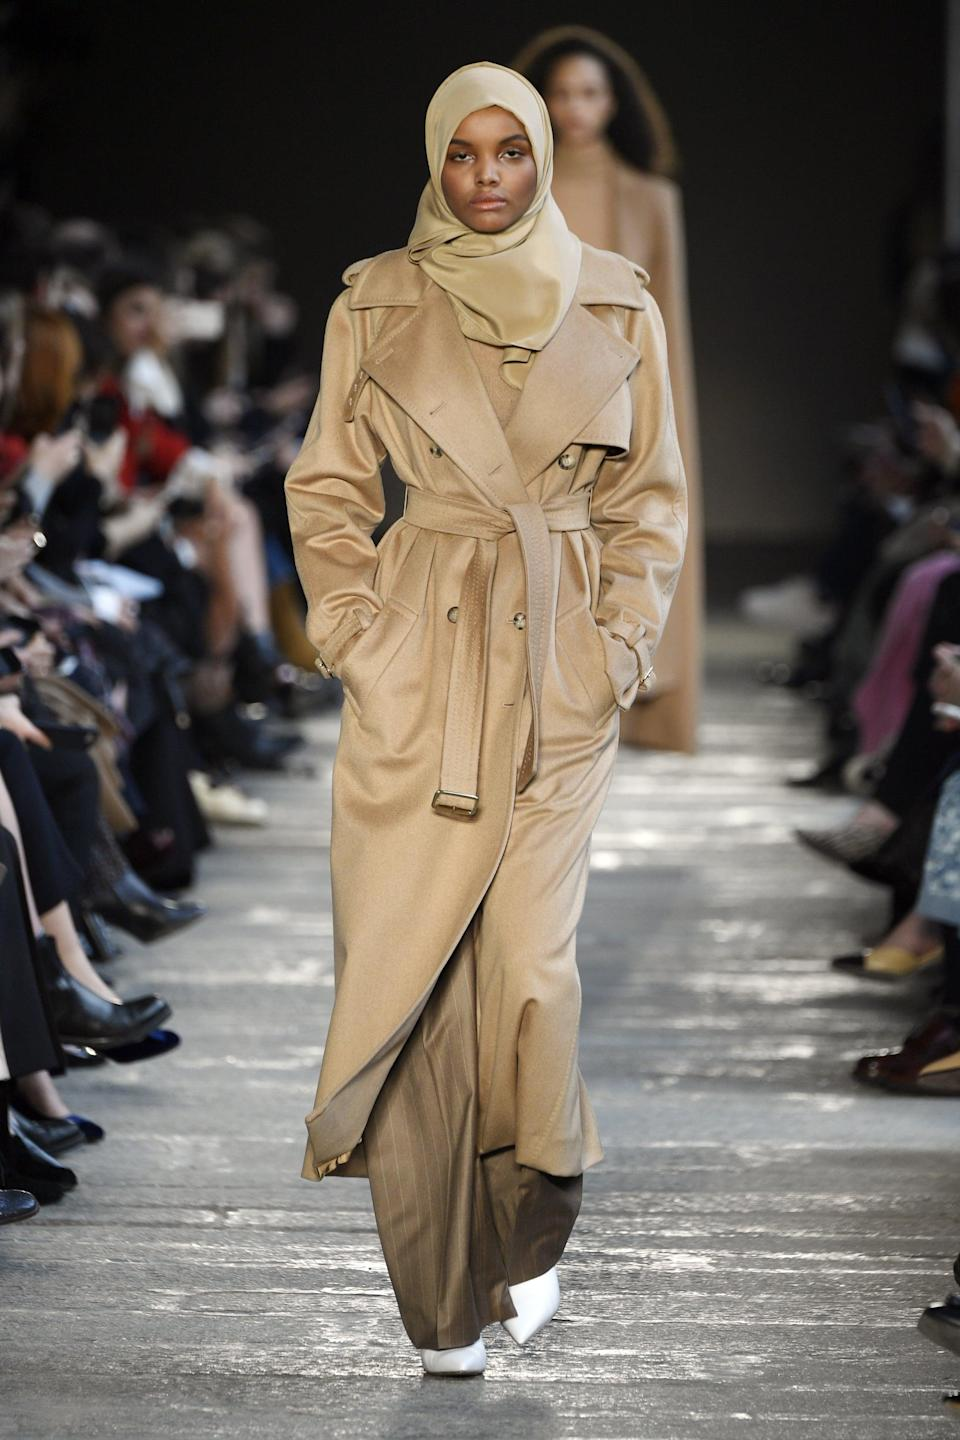 """<p>The first Muslim woman to wear a hijab on the international high-fashion catwalk and the first woman to wear a hijab on the cover of of an American fashion or beauty magazine, Halima Aden has never played it safe in the modeling world. Aden grew up in a refugee camp in Kenya and now works as a UNICEF ambassador and activist. Though she's reportedly <a href=""""https://www.popsugar.com/fashion/halima-aden-hijab-journey-in-fashion-48008245"""" class=""""link rapid-noclick-resp"""" rel=""""nofollow noopener"""" target=""""_blank"""" data-ylk=""""slk:taking a break from the runway"""">taking a break from the runway</a>, she's walked for Gucci, Calvin Klein, Balenciaga, and many other top brands.</p>"""